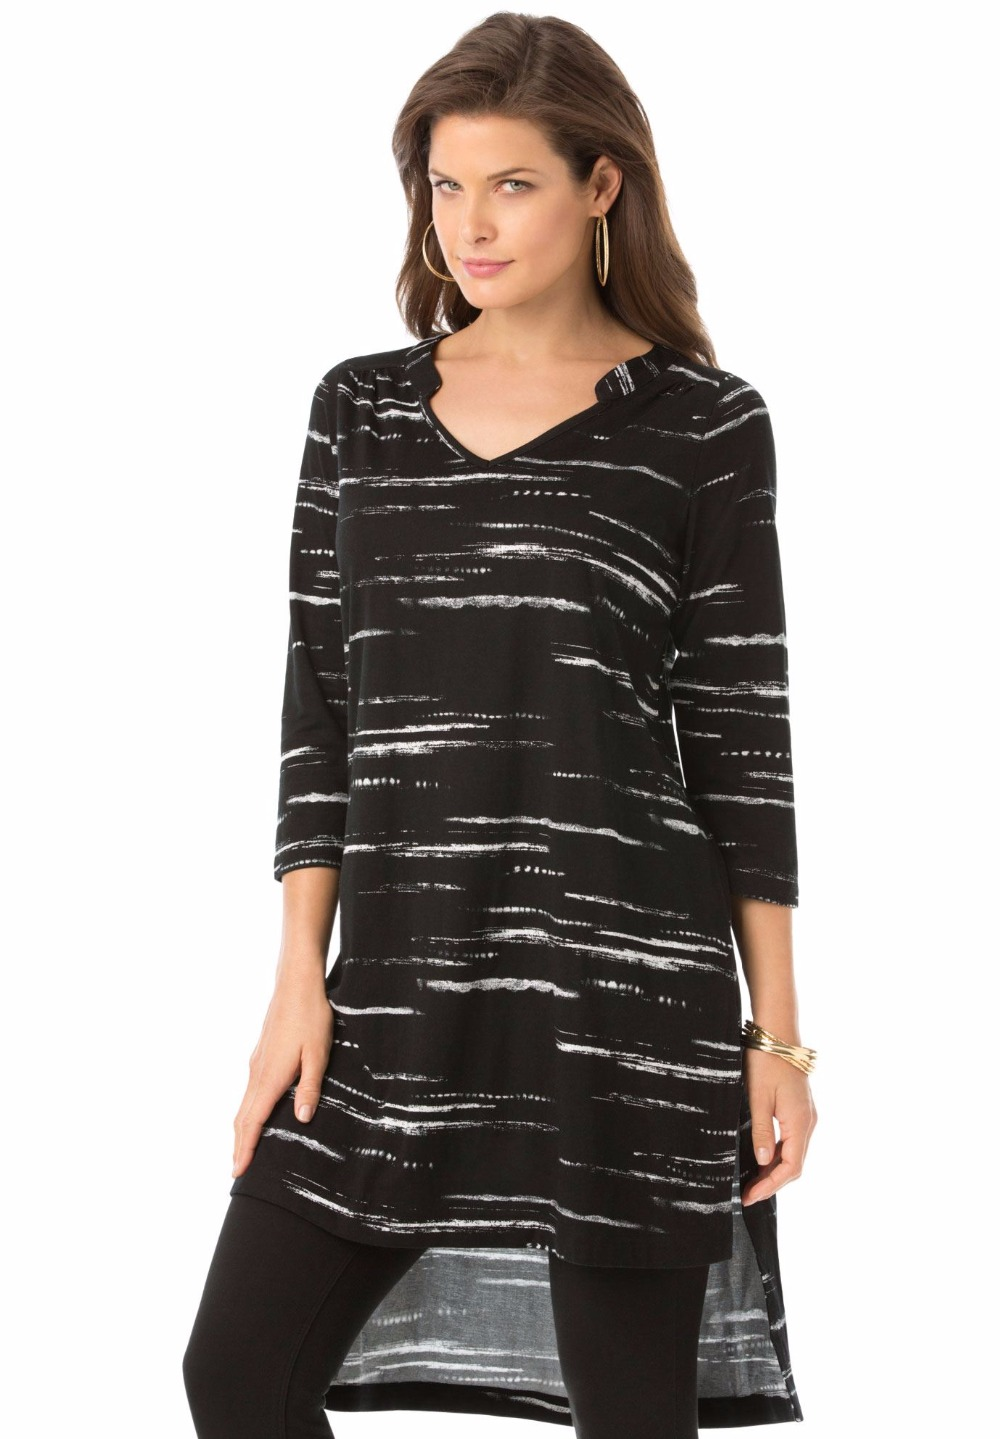 Overstock uses cookies to ensure you get the best experience on our site. If you continue on our site, you consent to the use of such cookies. Learn more. OK Tops Simply Ravishing Women's Scoop Long Sleeve Pleated Flare Blouse Top Tunic Shirt (Size: S-5X) 28 Reviews.